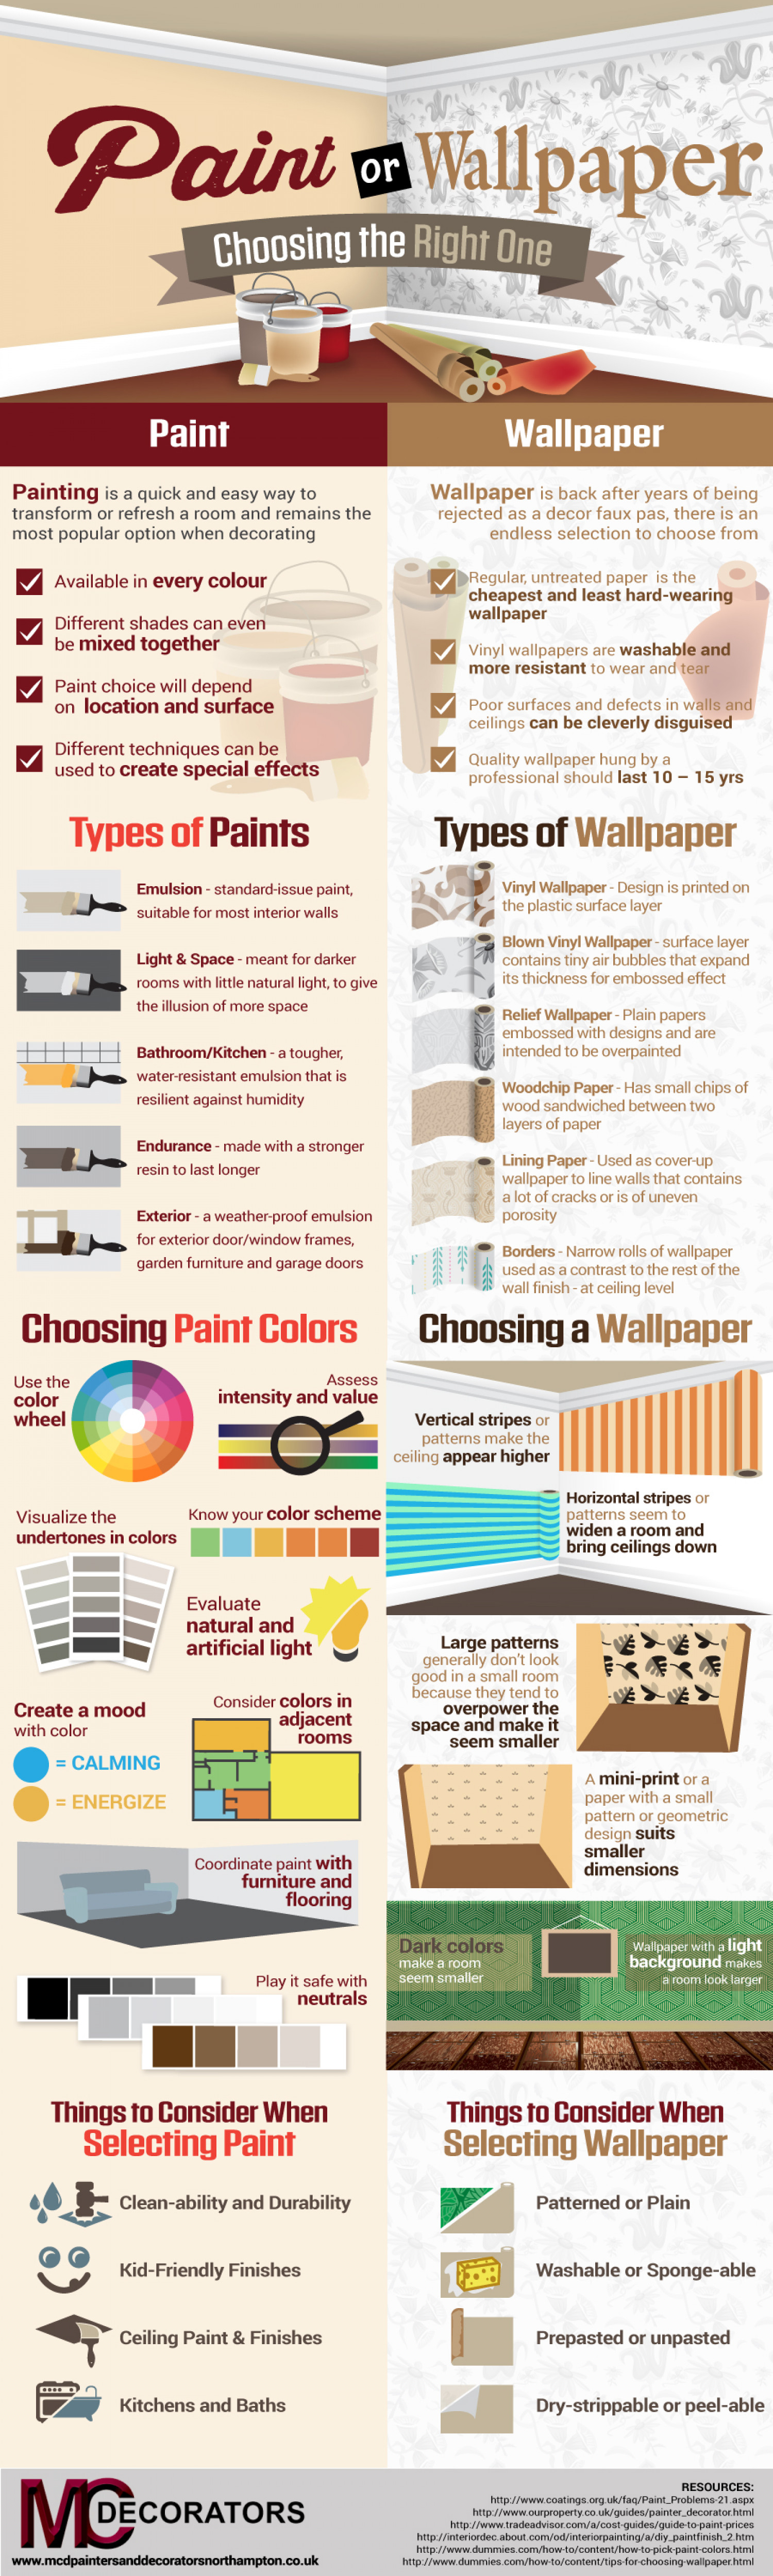 Paint or Wallpaper: Choosing the Right One  Infographic